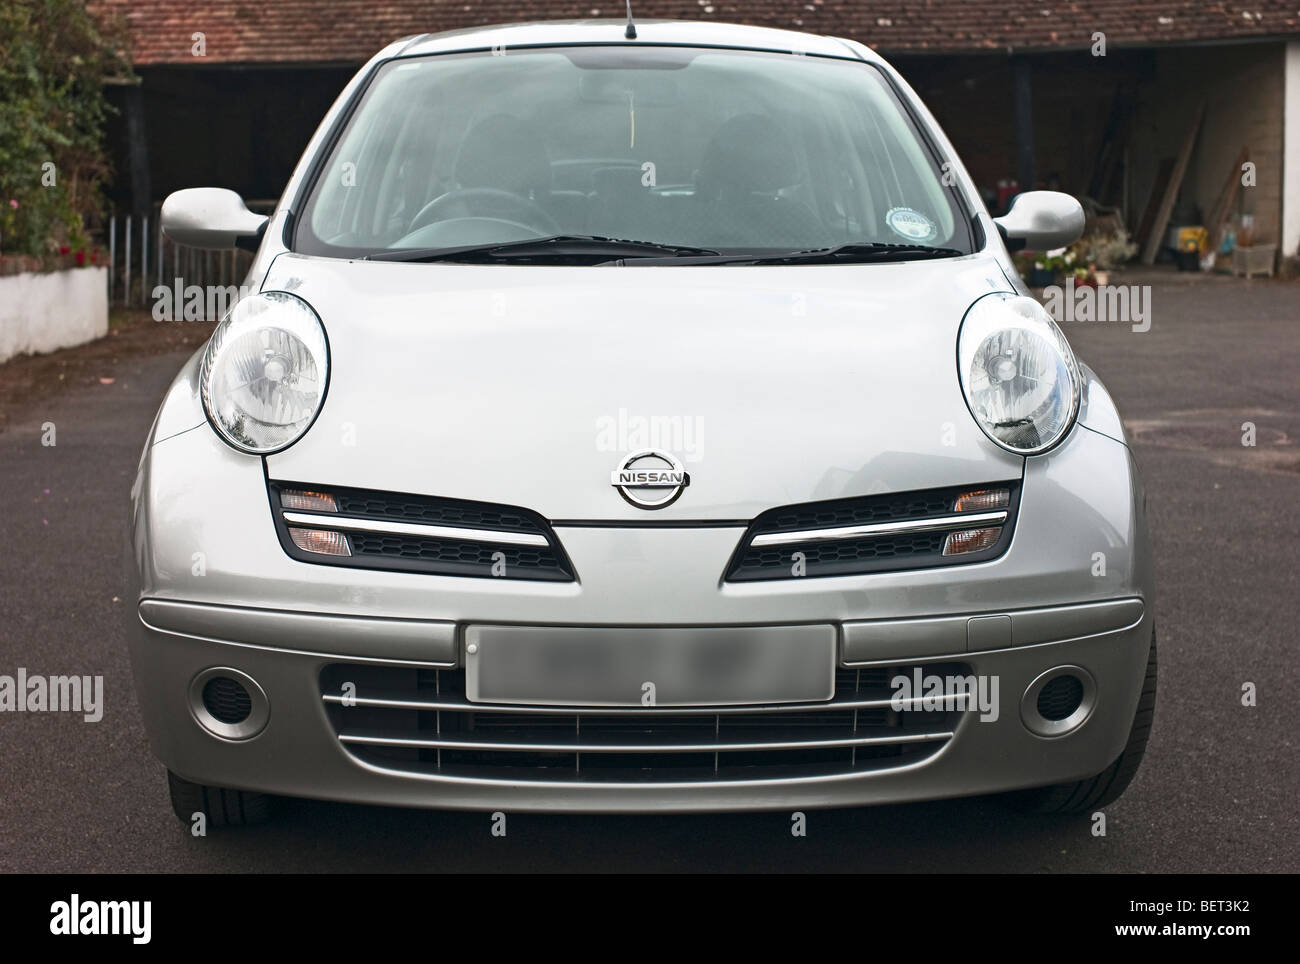 Nissan Micra Spirita petite berline vue avant Photo Stock